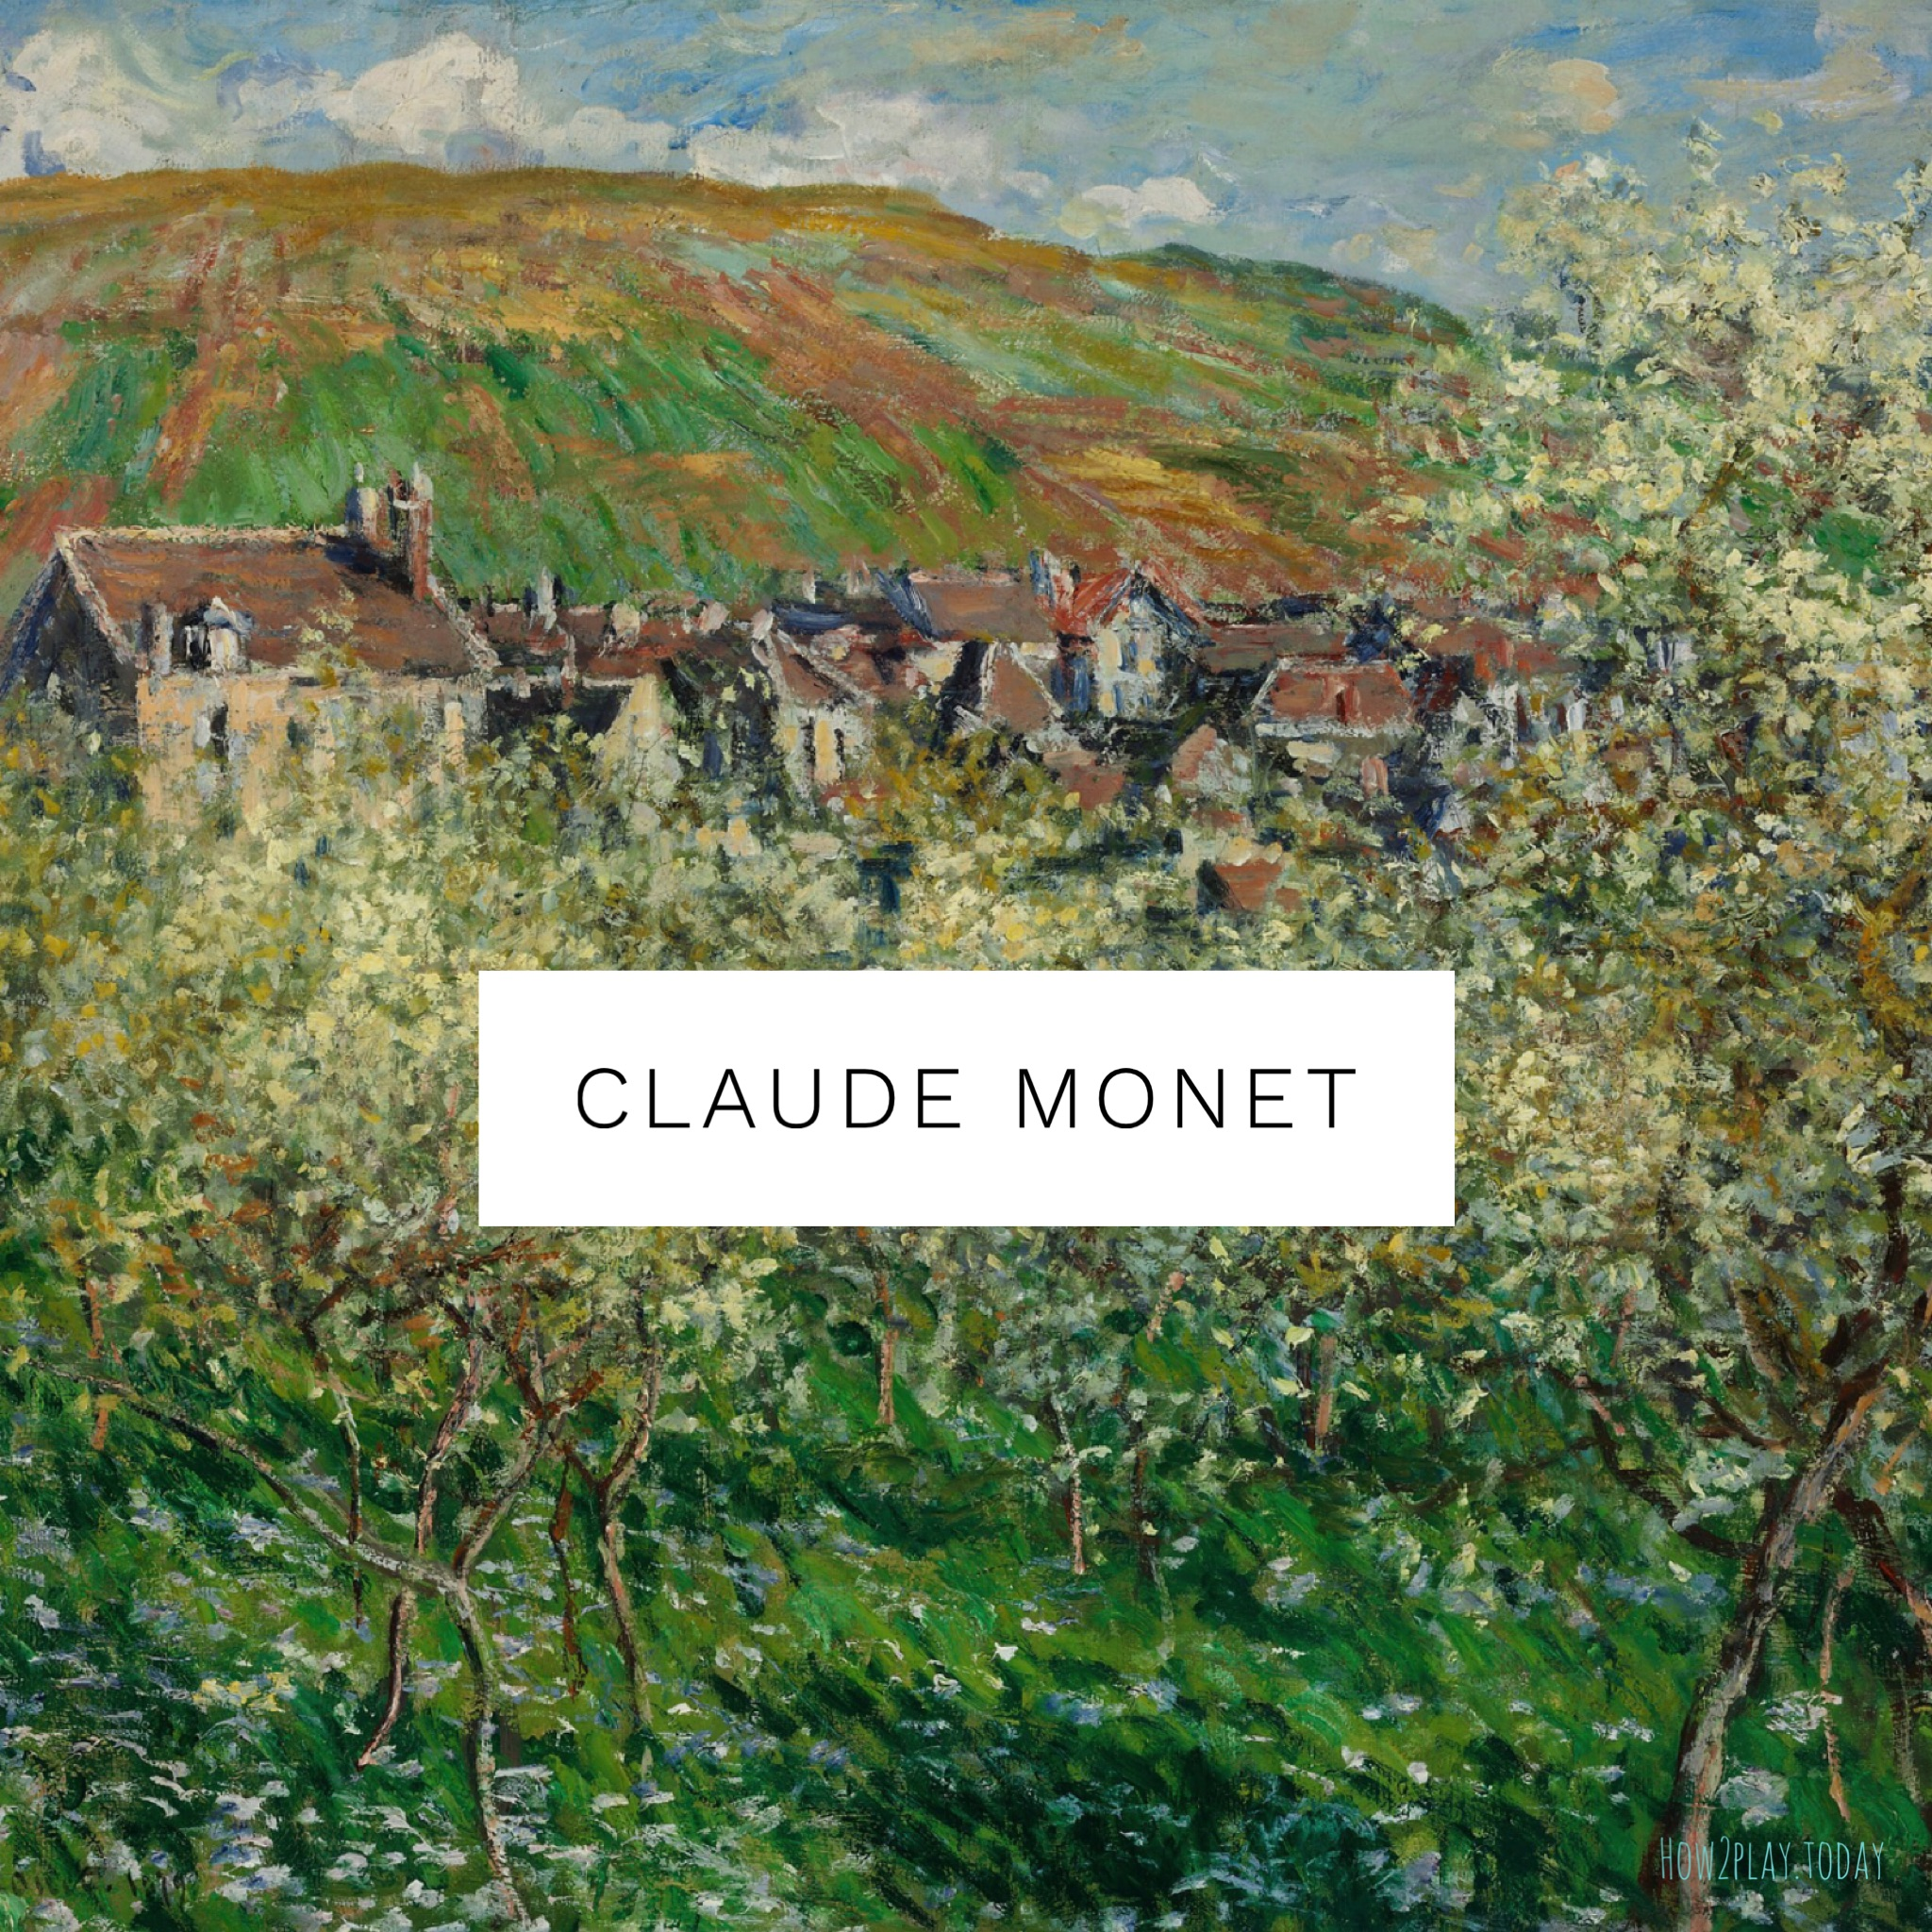 Claude Monet inspired art learning / lesson plans for kids. Come explore Expressionism for preschool and elementary age children. Children will learn Elements of Art, Principles of Design while having the freedom of creative expression.